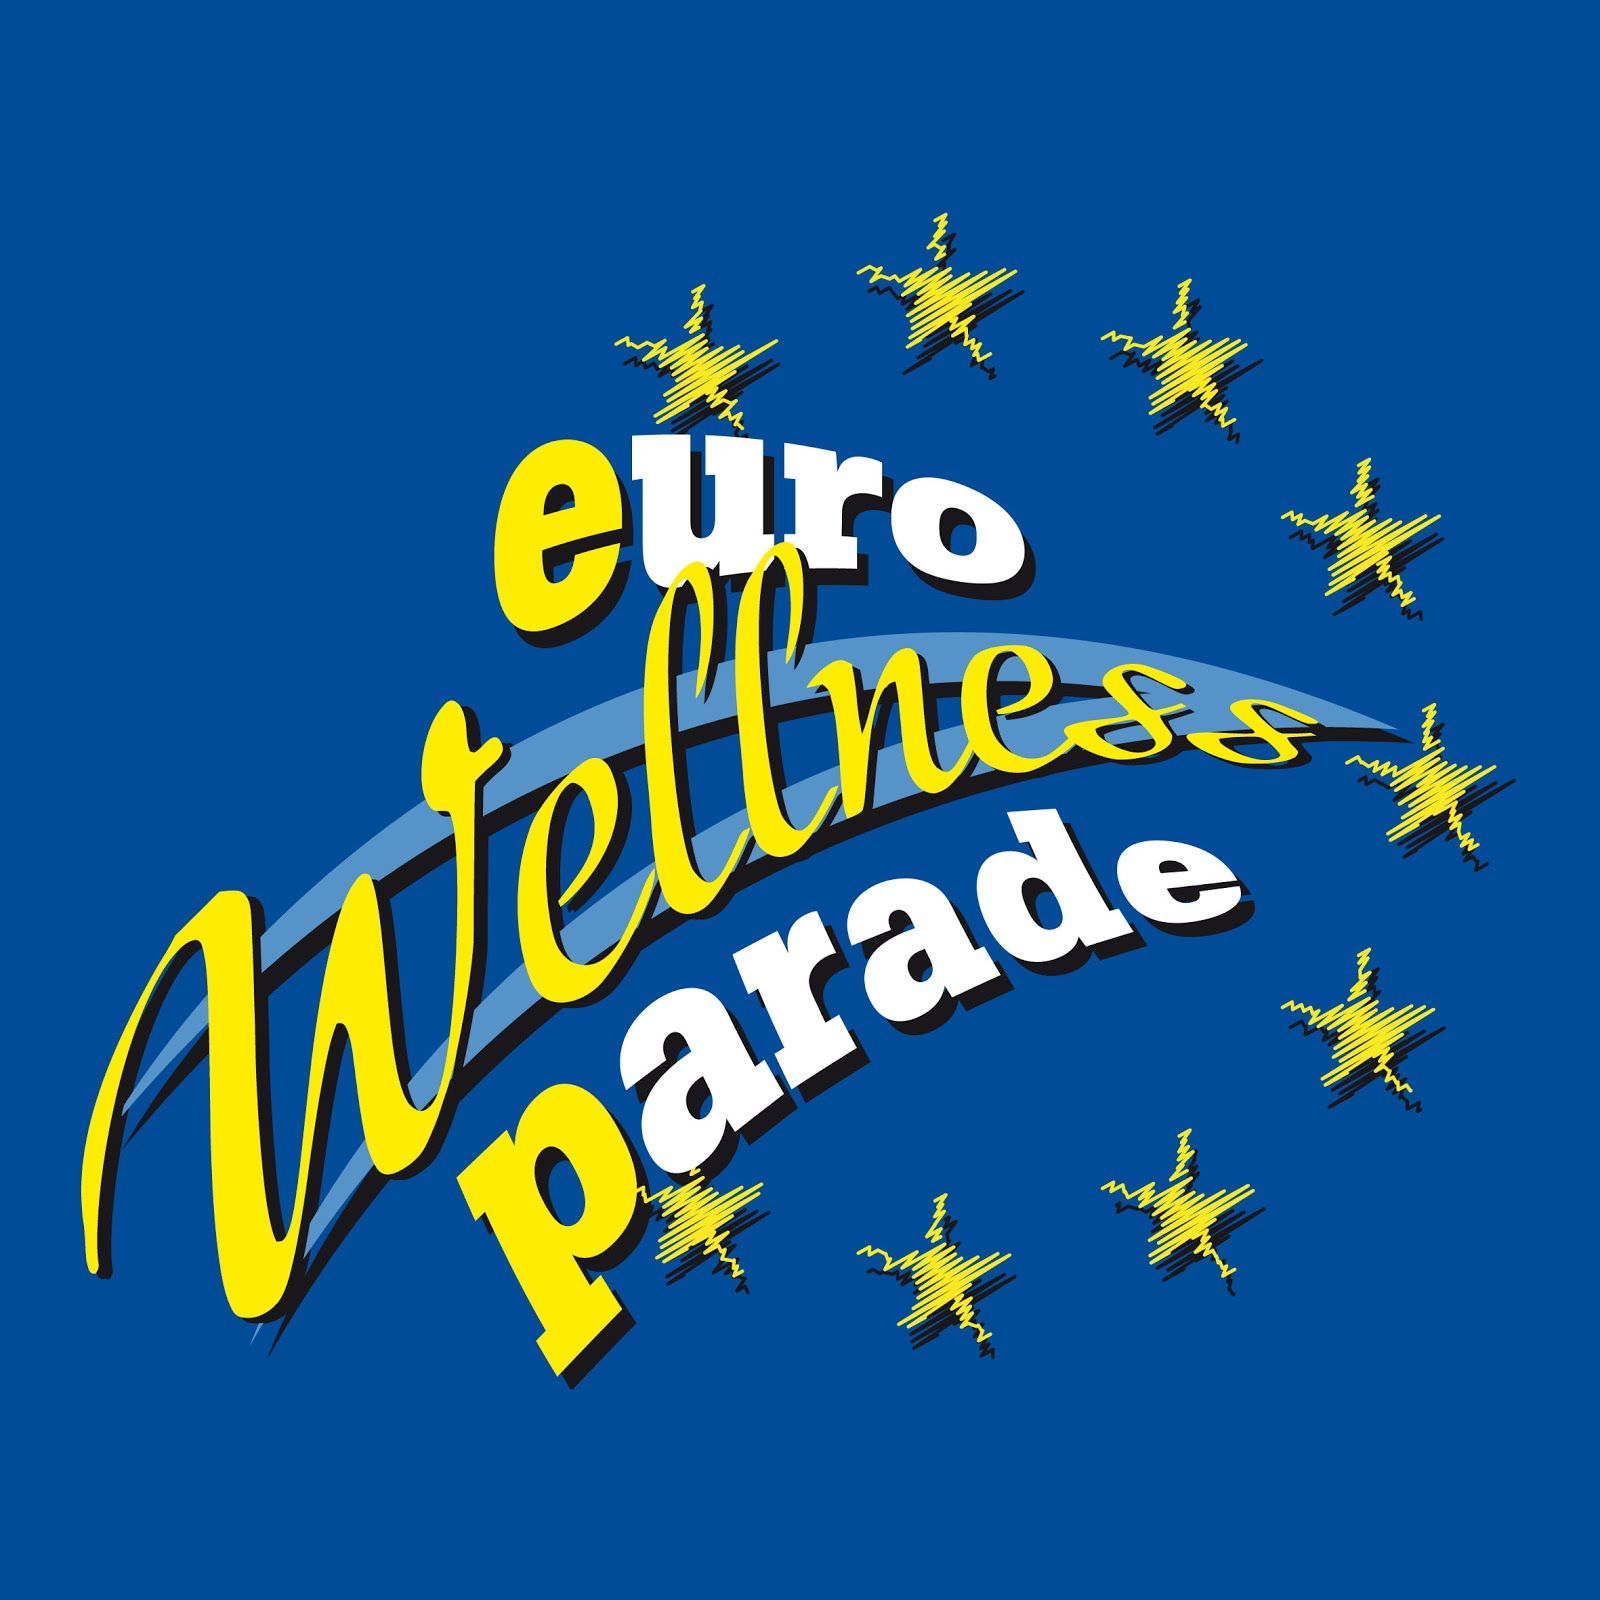 Collaboriamo con Euro WellNess